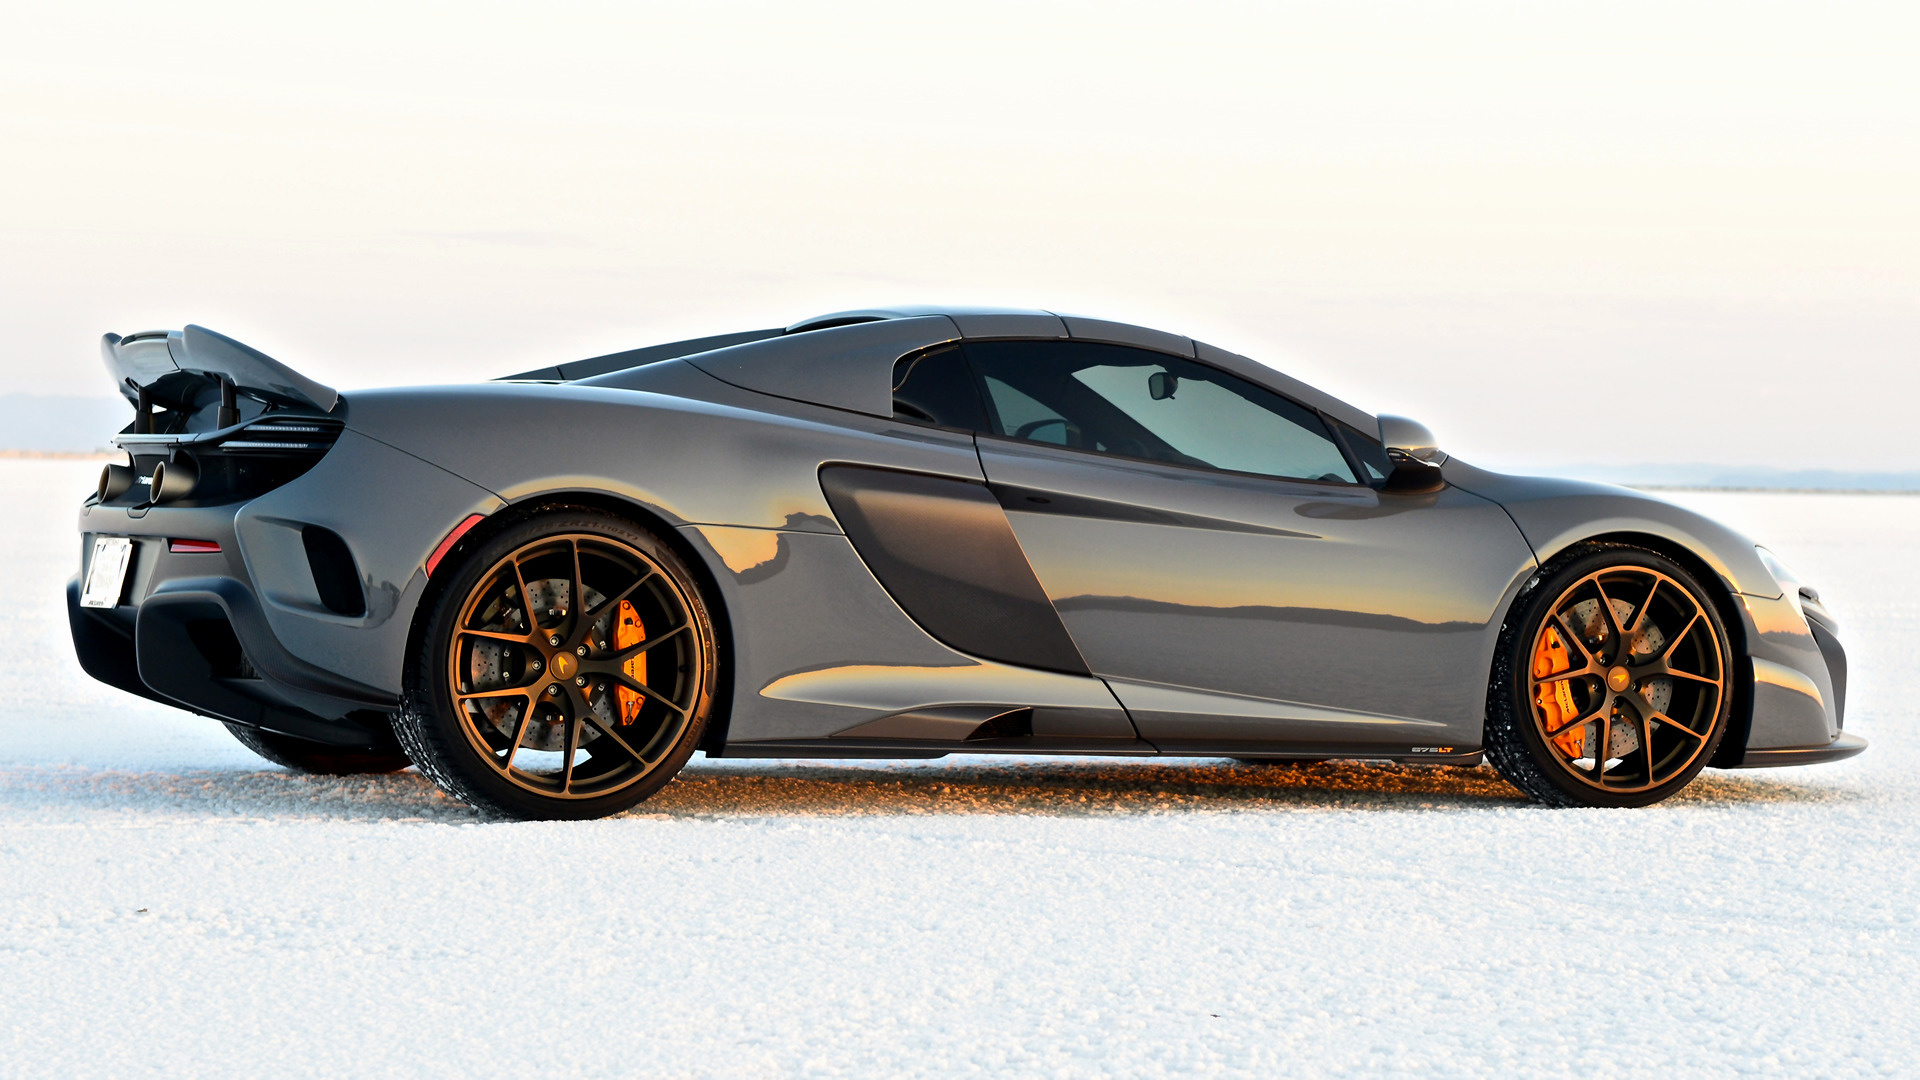 2017 McLaren 675LT Spider in the Snow HD Wallpaper | Background ...